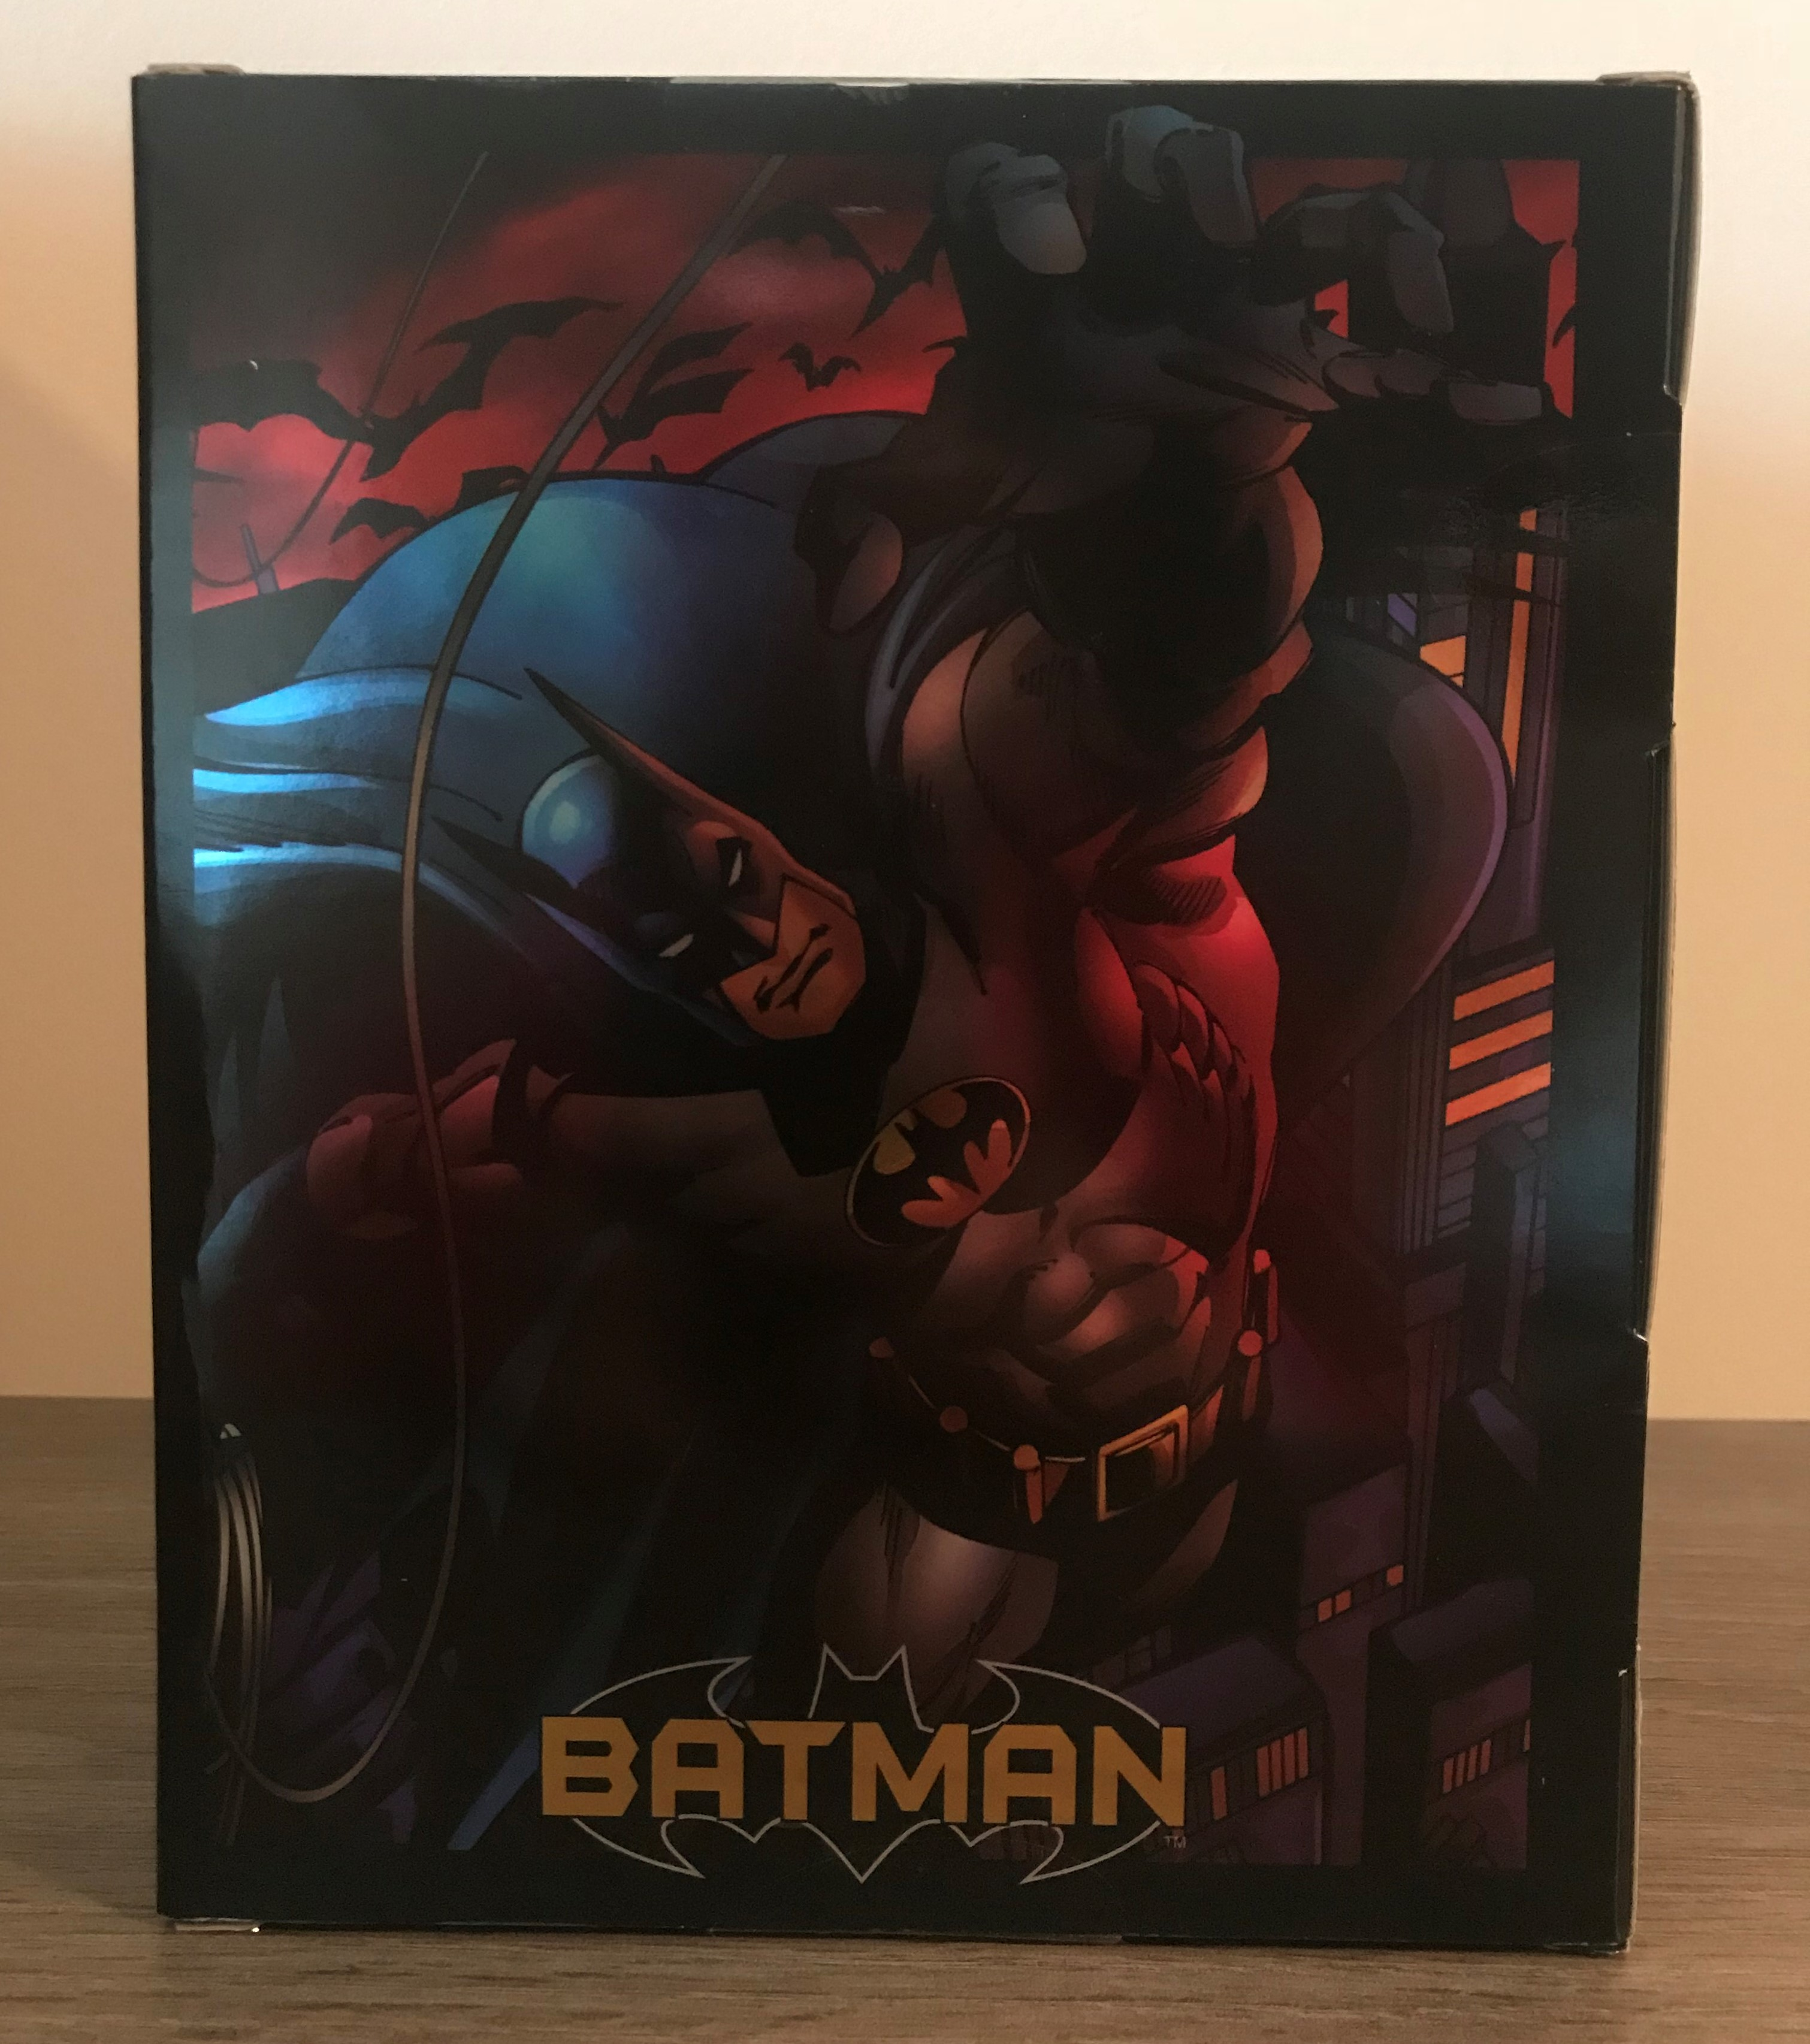 Batman Exclusive Collectors Edition Action Figure, San Diego Comic Con (SDCC) 2004 027084079159 Mattel B9911